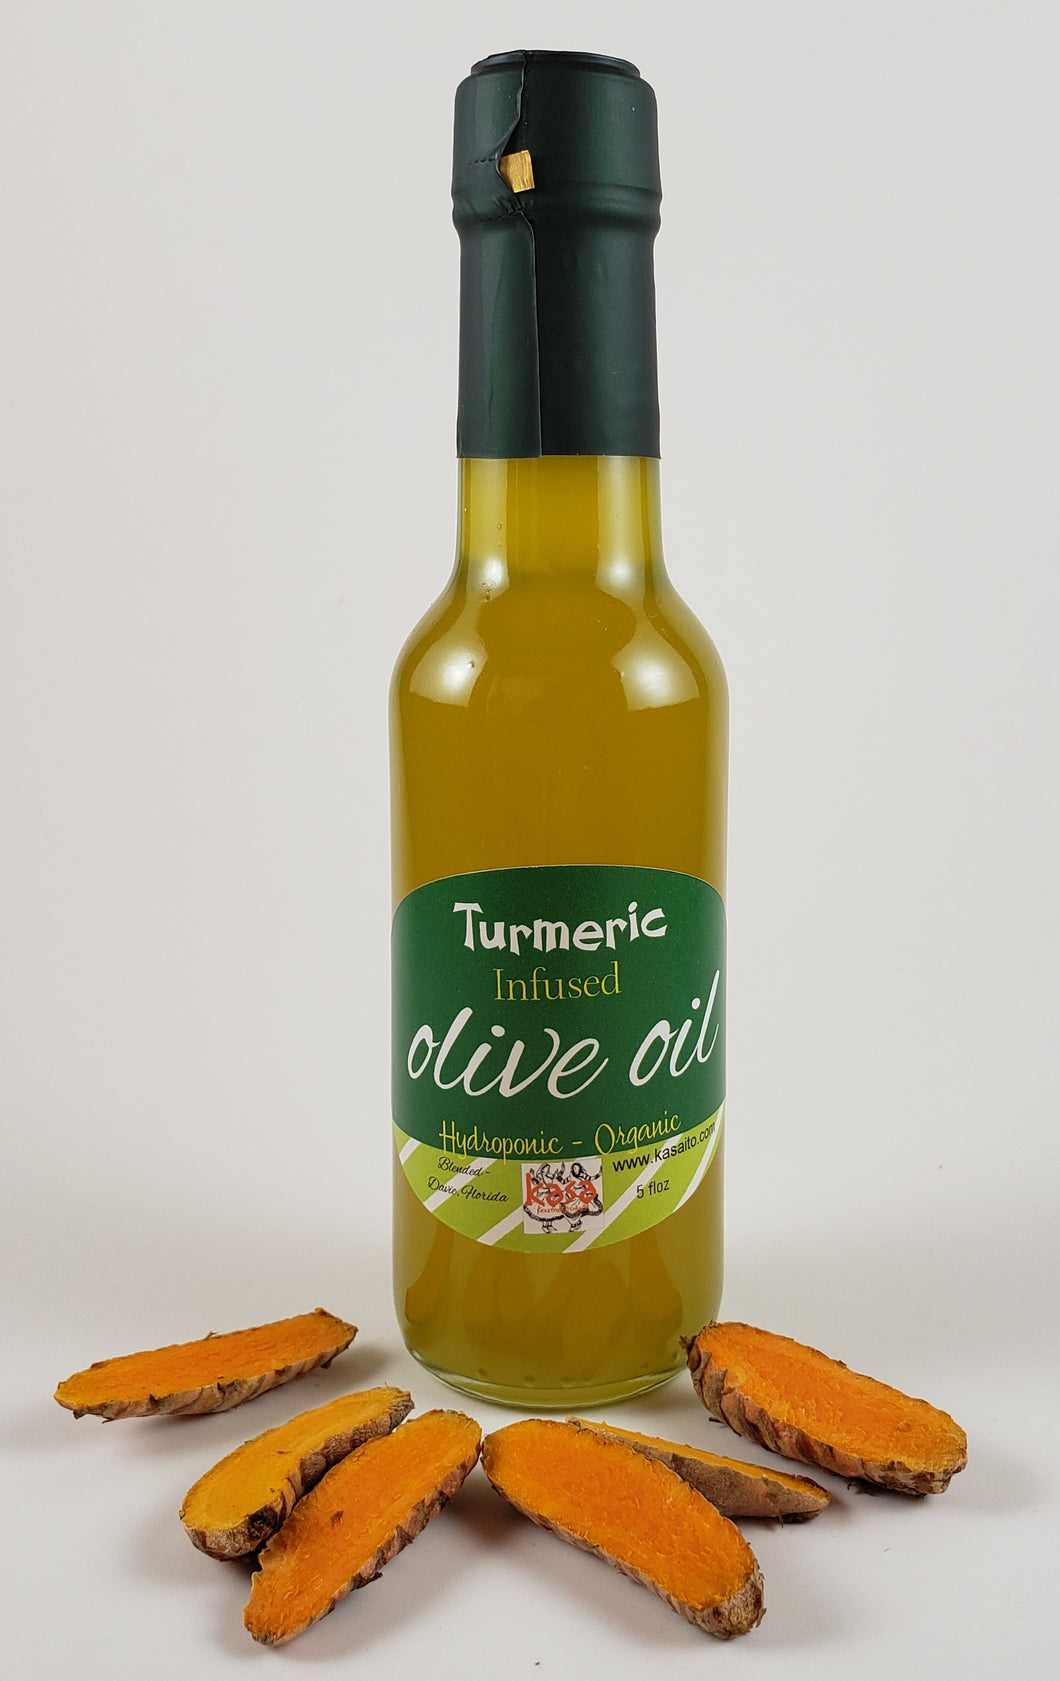 Artisanal infused Turmeric Oil quality Italian Olive Oil Healthy Turmeric Olive Oil East Asia Inspired Trusted Health